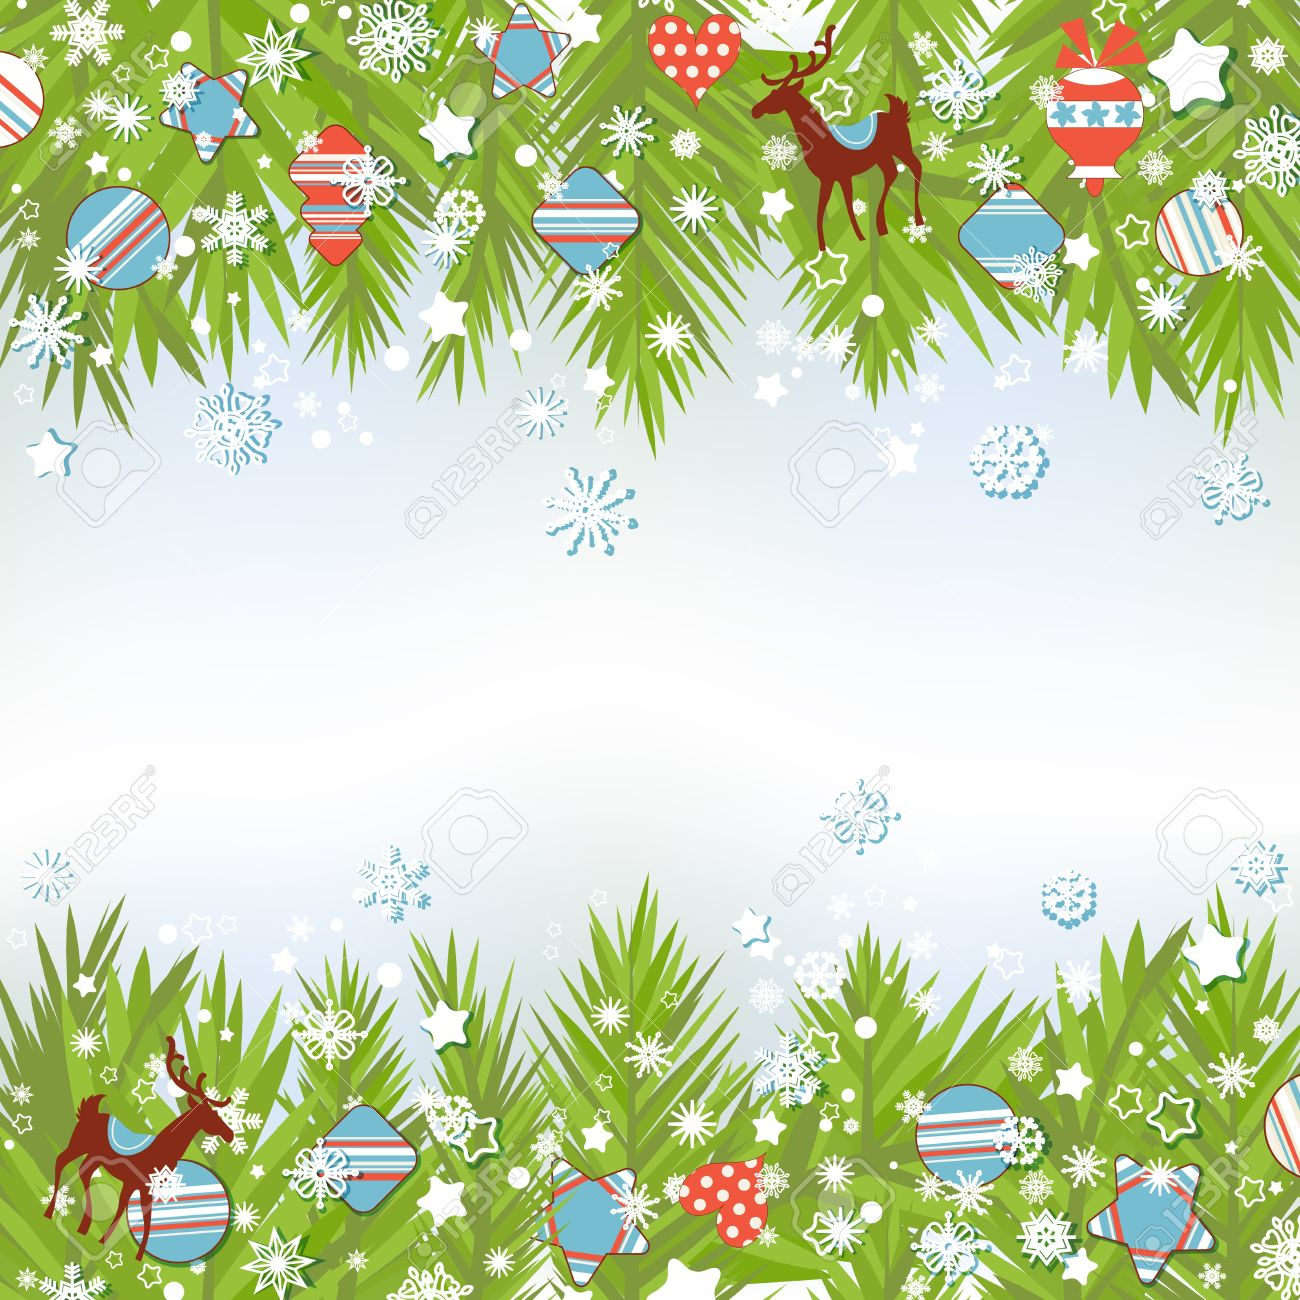 Christmas background, fir tree and decorations vector illustration Stock Vector - 11377066